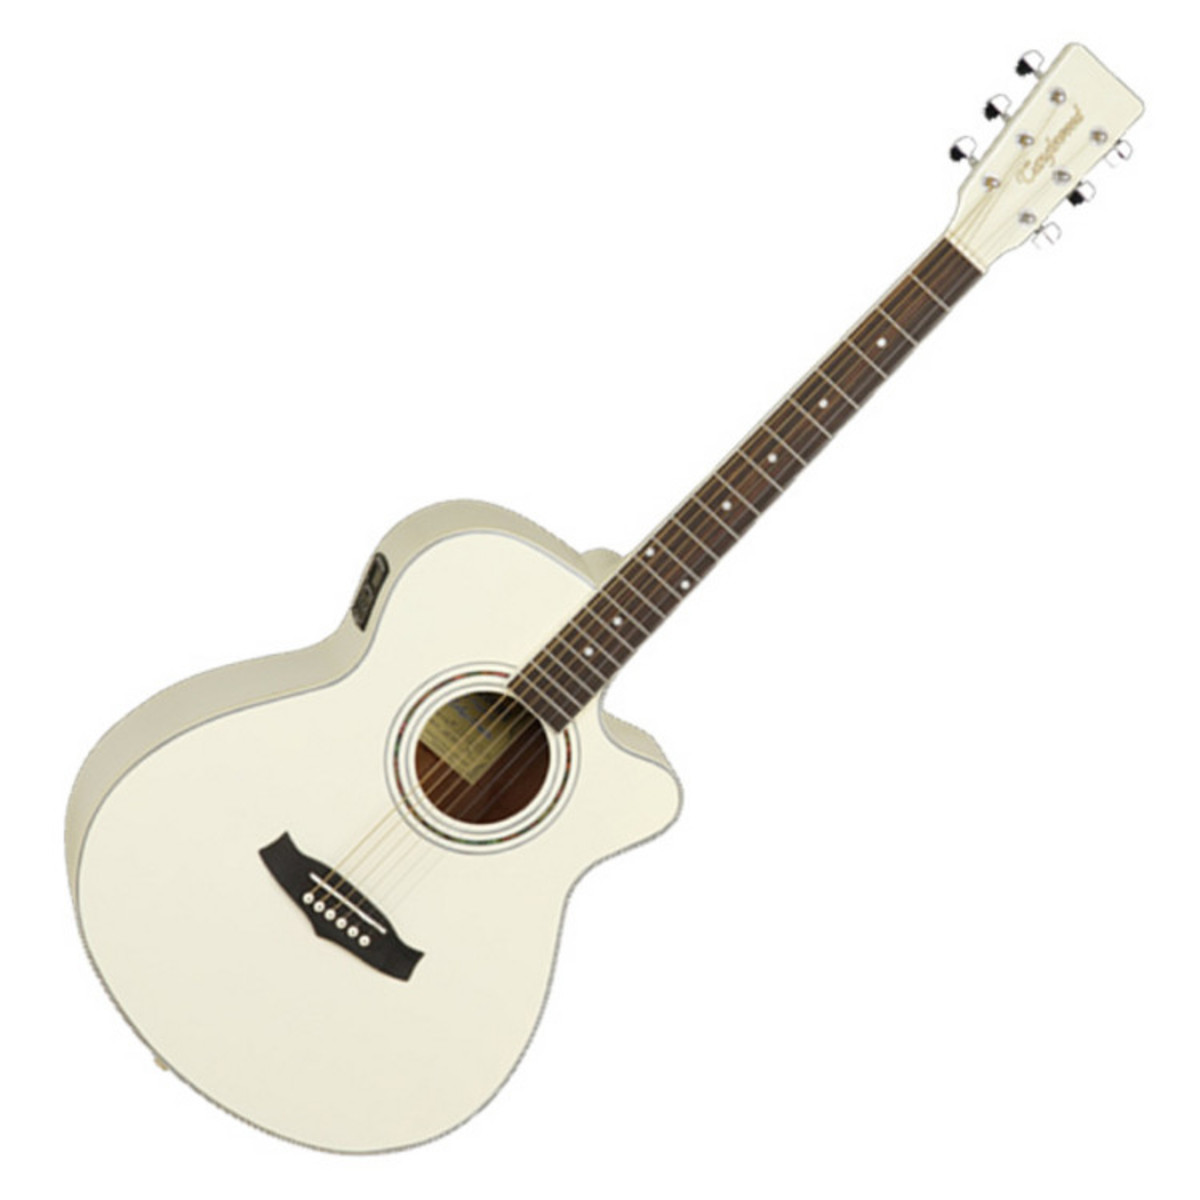 tanglewood discovery electro acoustic guitar pearl white ex demo at. Black Bedroom Furniture Sets. Home Design Ideas